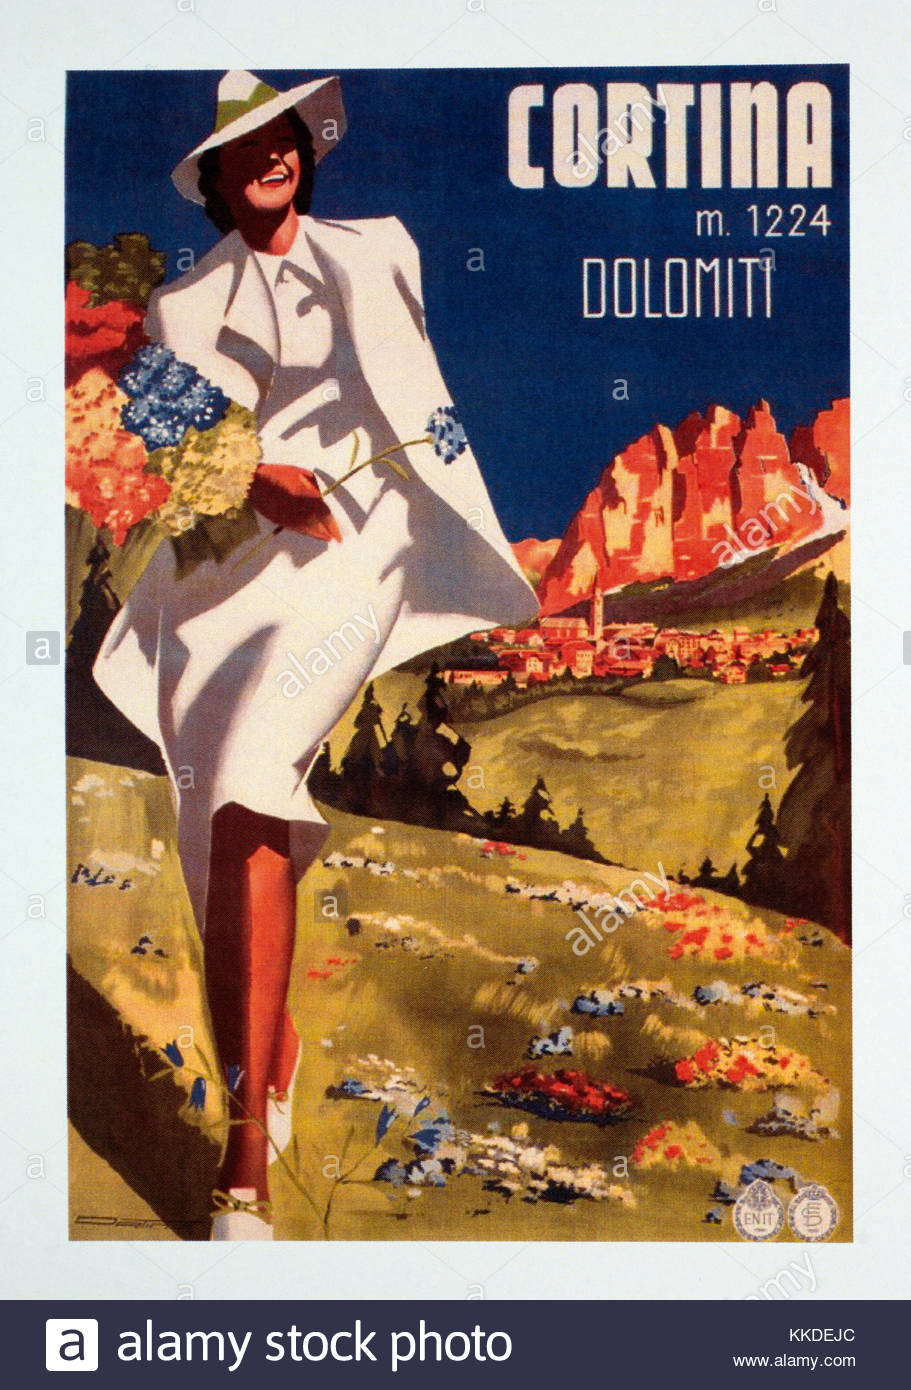 Vintage travel poster advertising Cortina in the Dolomites - Stock Image